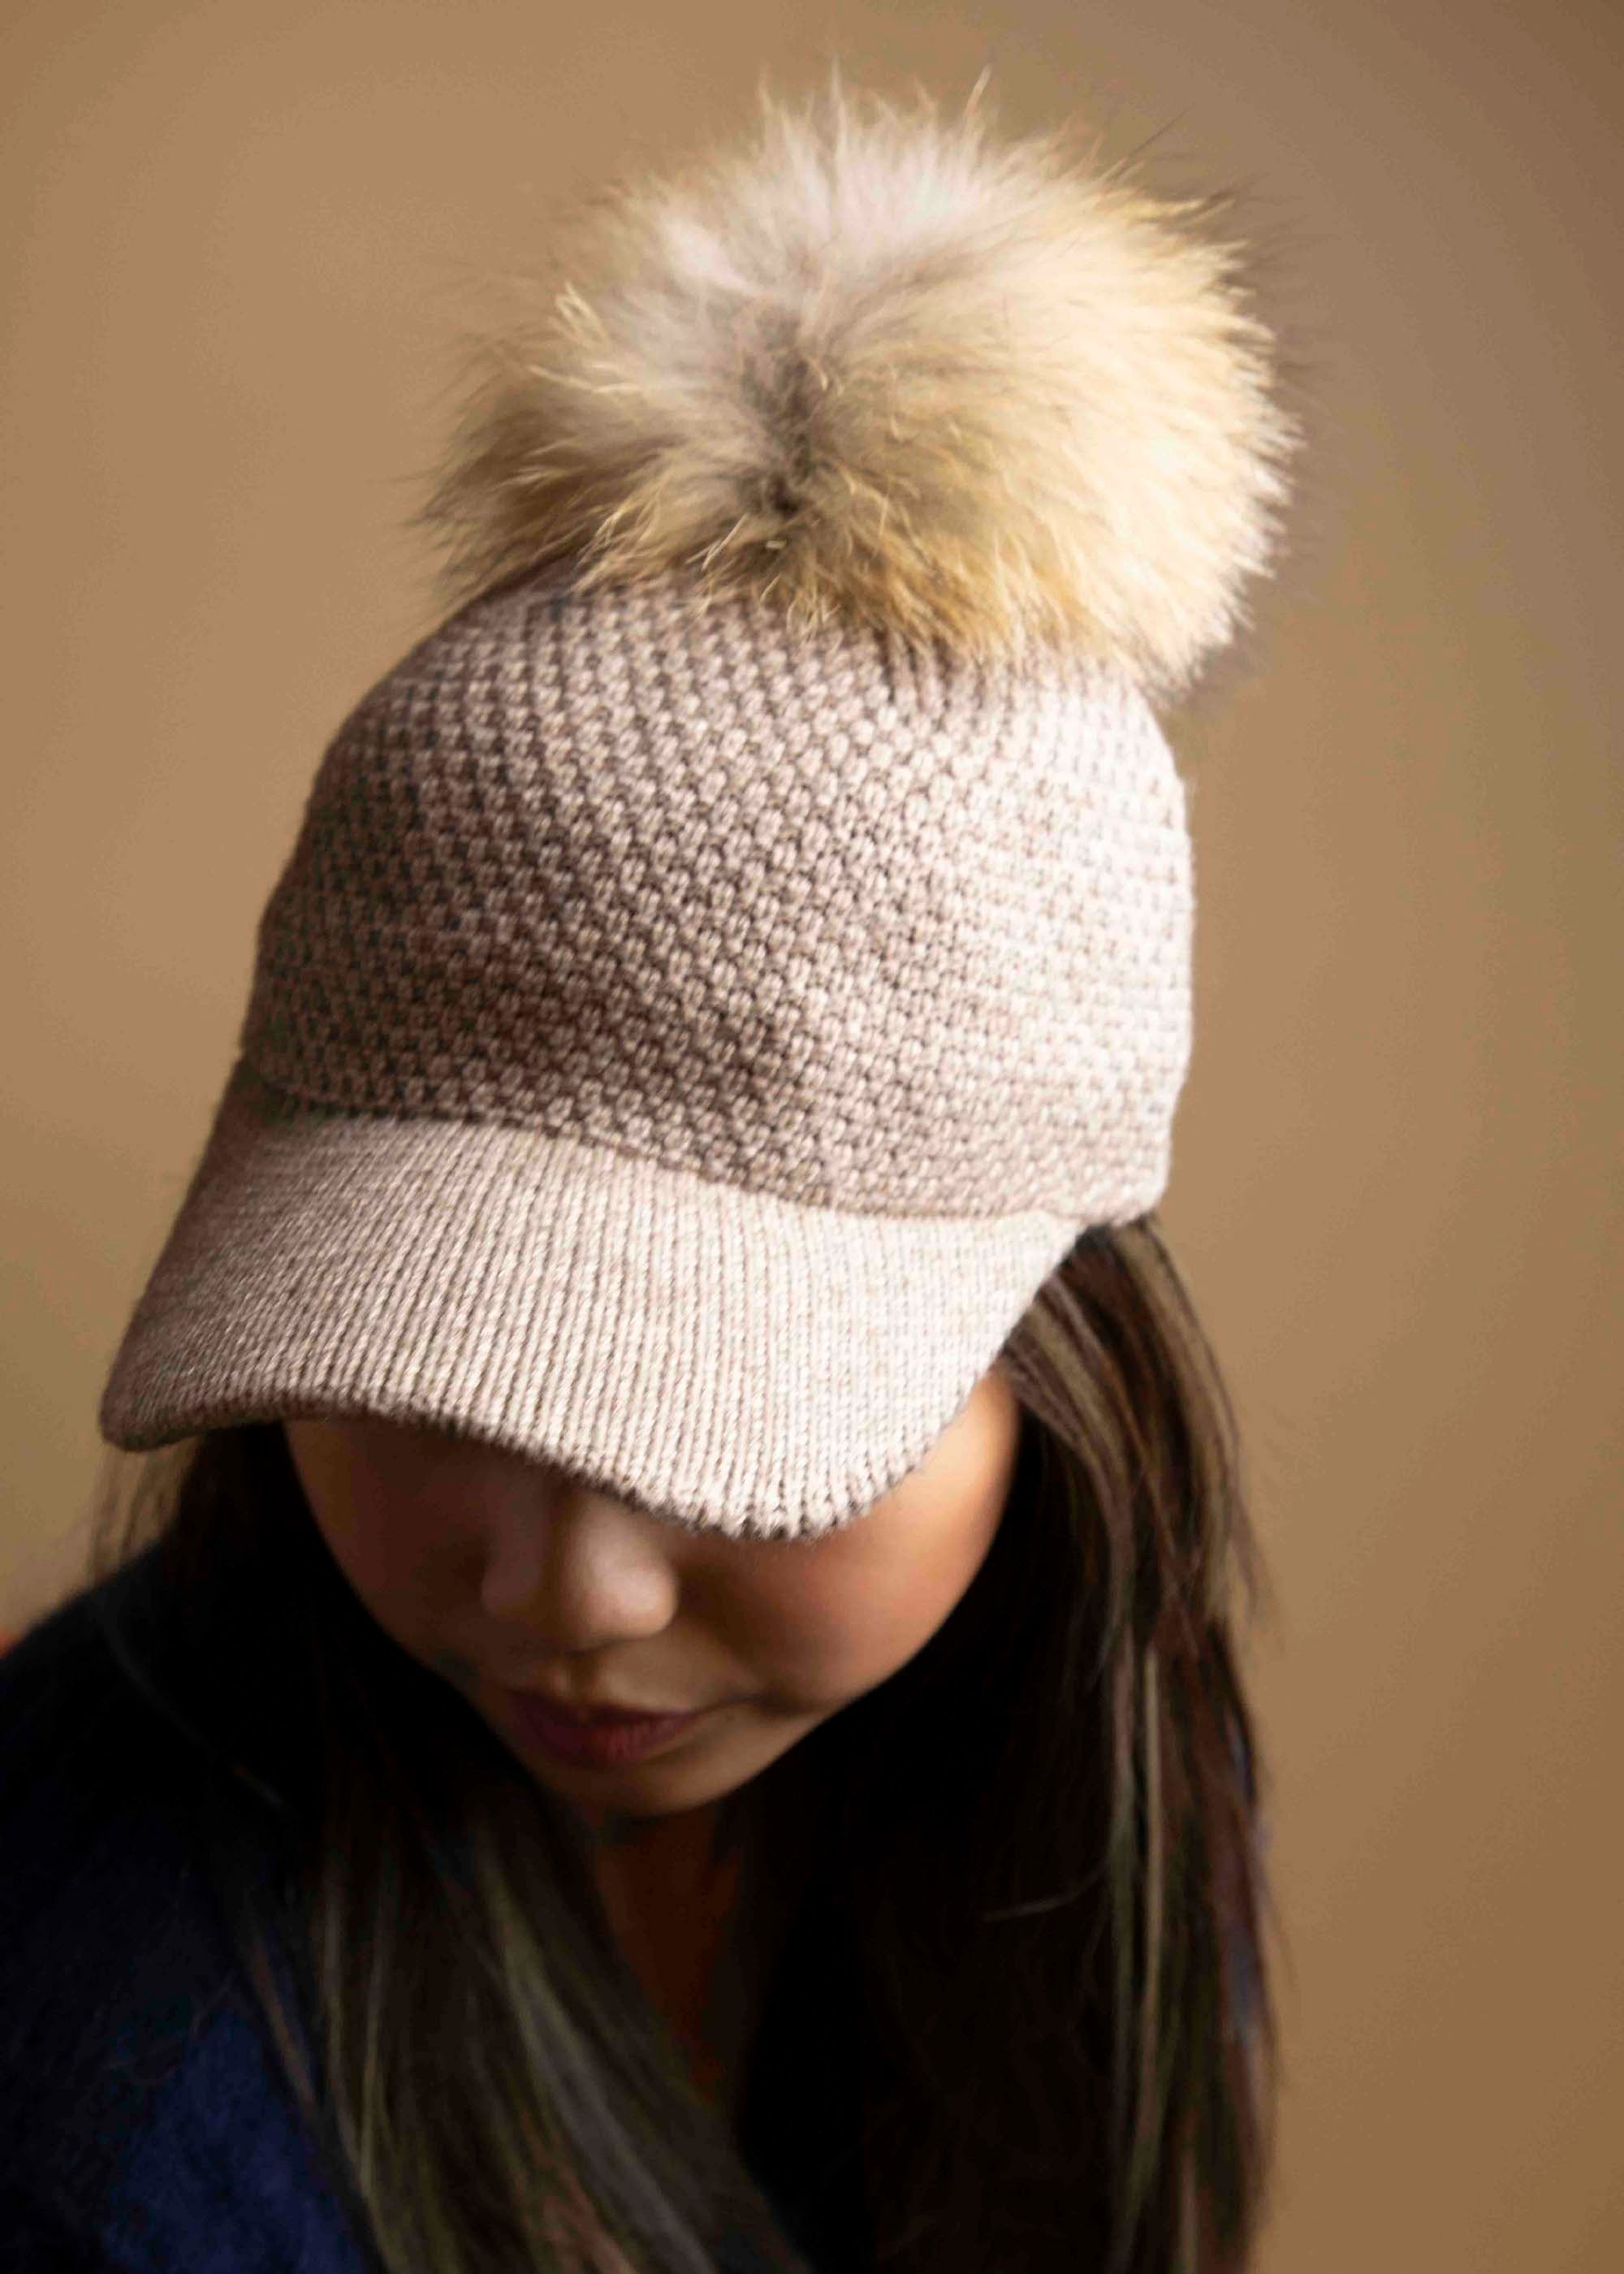 Knitted Baseball Cap With Fur Pom Pom Picnic-SF